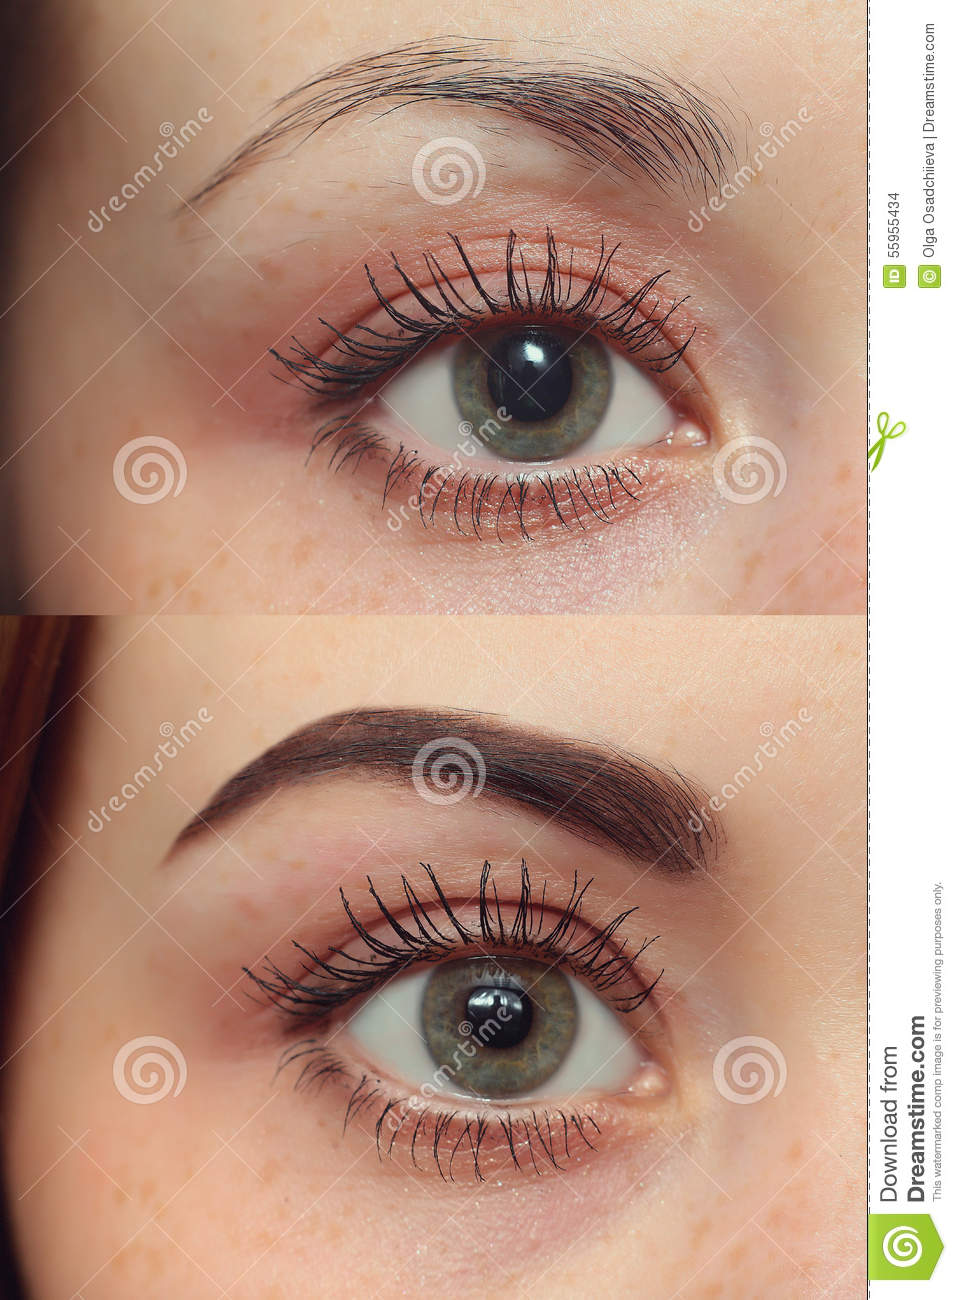 Perfect Eyebrows Before After Stock Photo Image 55955434